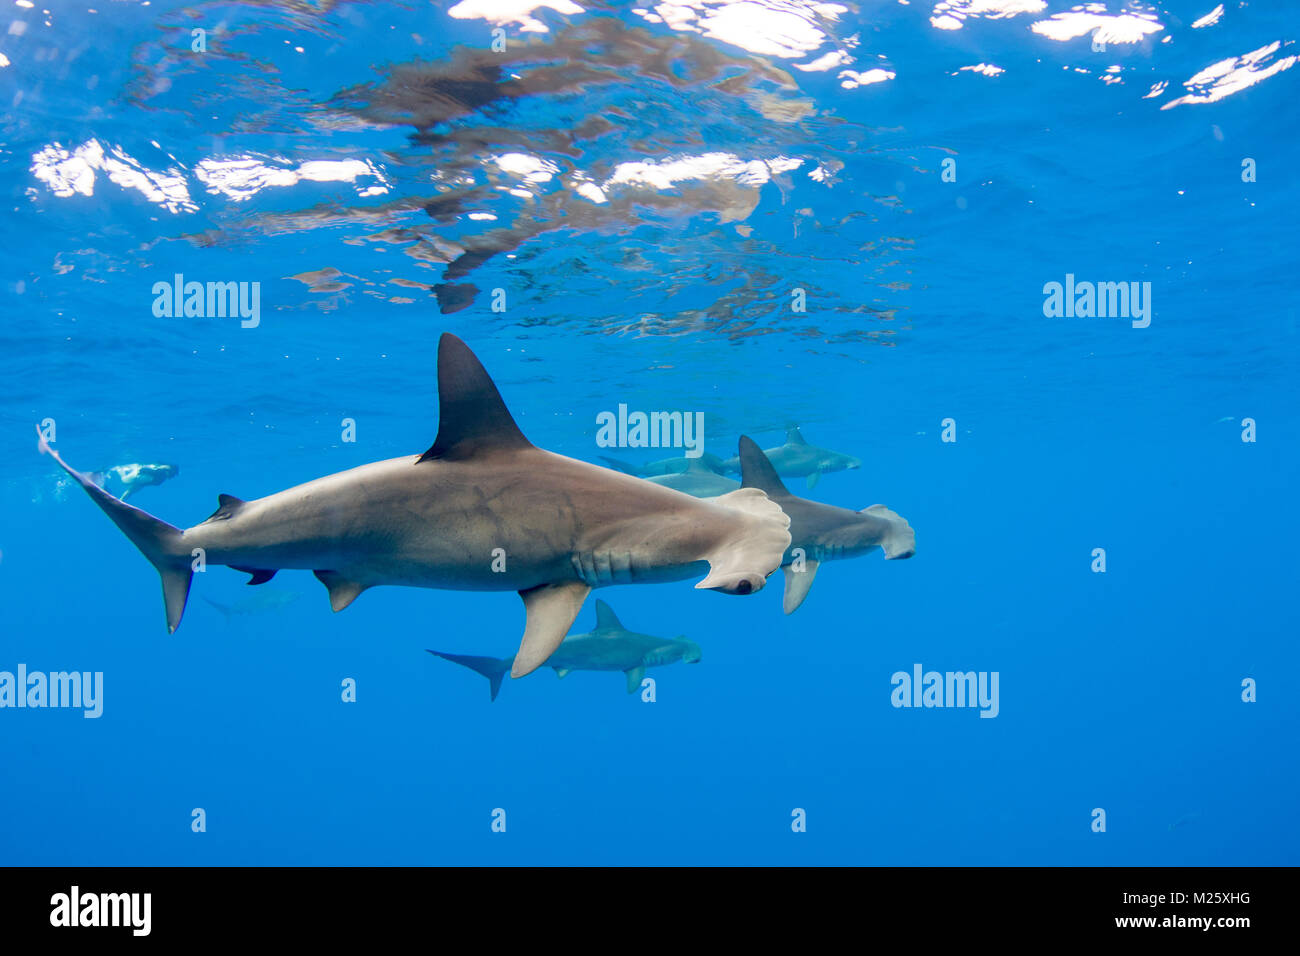 Schools of hammerhead sharks form offshore from Kona, Hawaii every year. - Stock Image